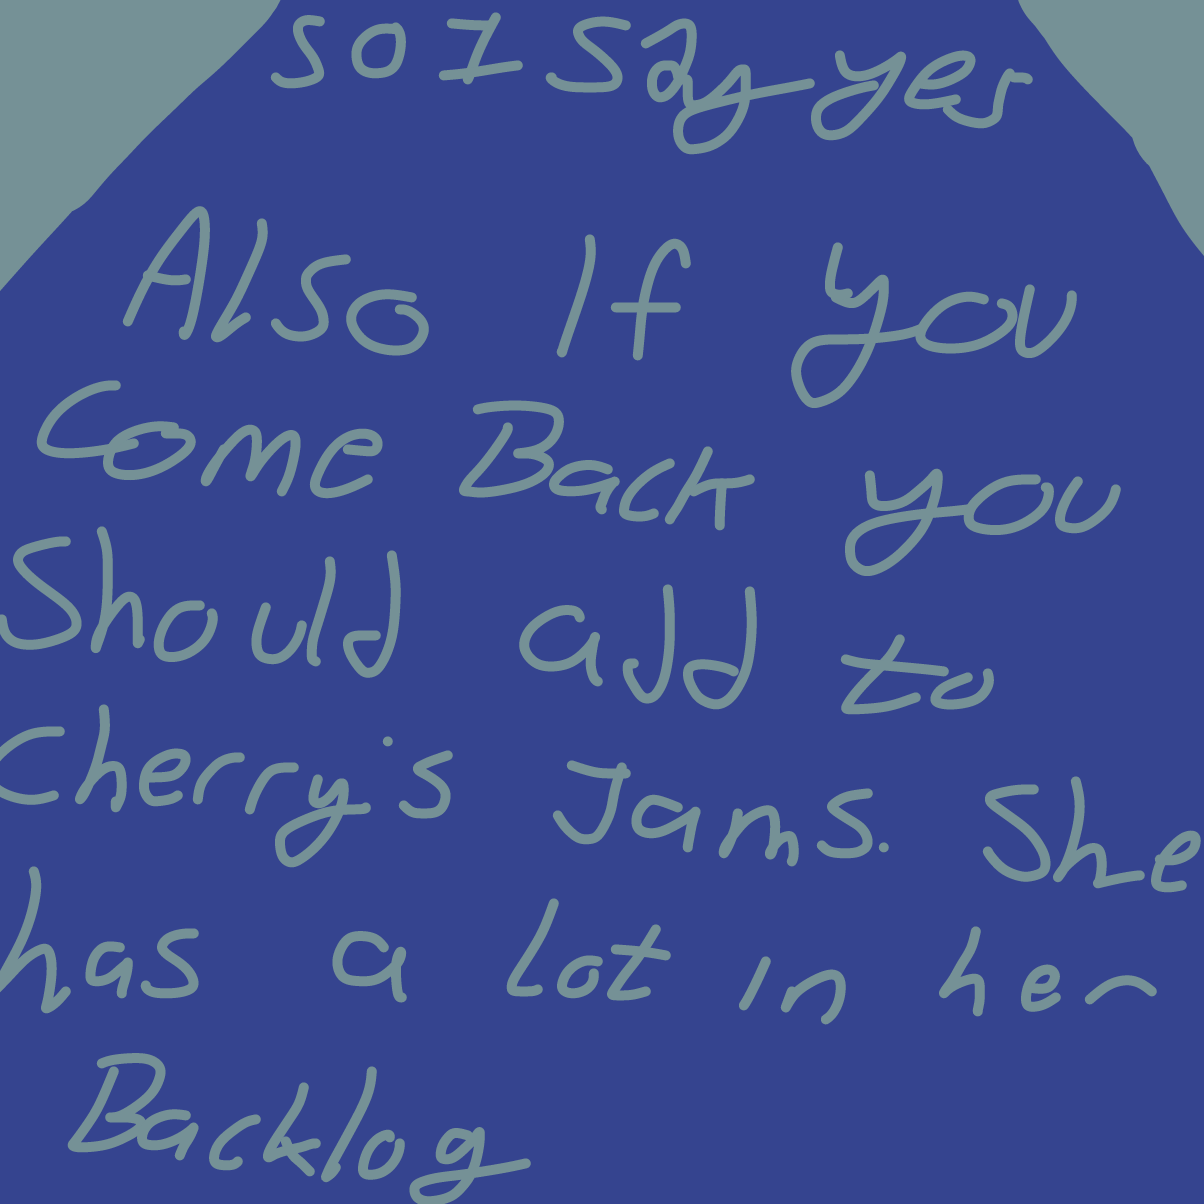 Drawing in Oh magic 8ball by CherryFlavored